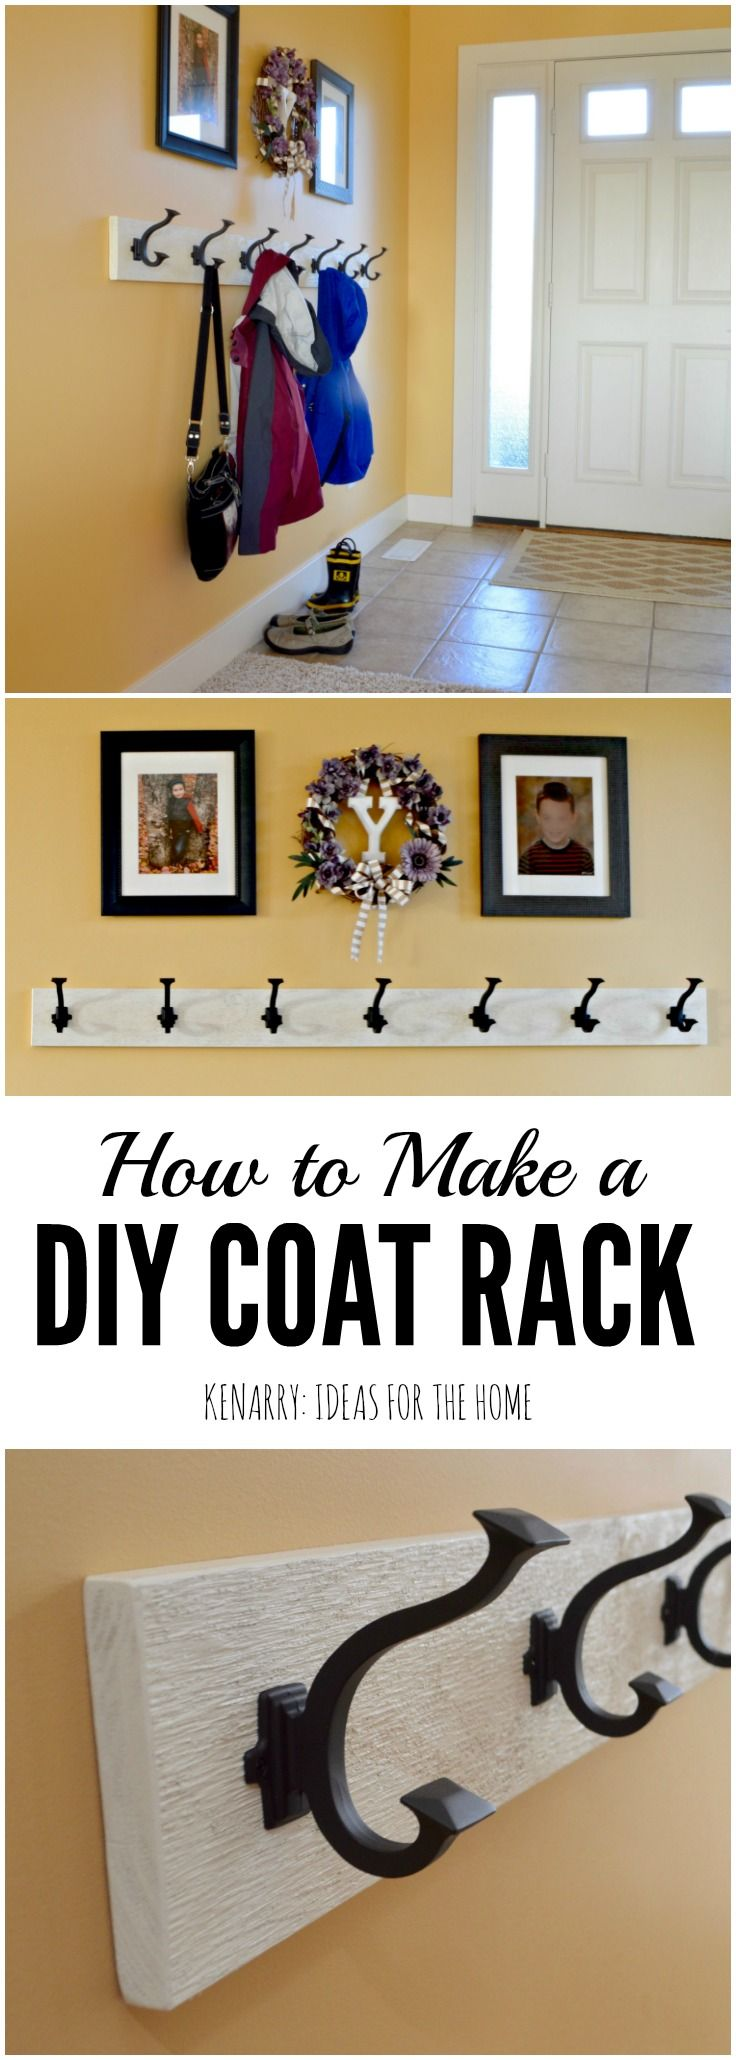 Charming Love This Idea For A DIY Coat Rack! It Is So Easy To Make One Yourself To  Hang On The Wall By Your Front Door Or Entry Way Using This Step By Step  Tutorial.